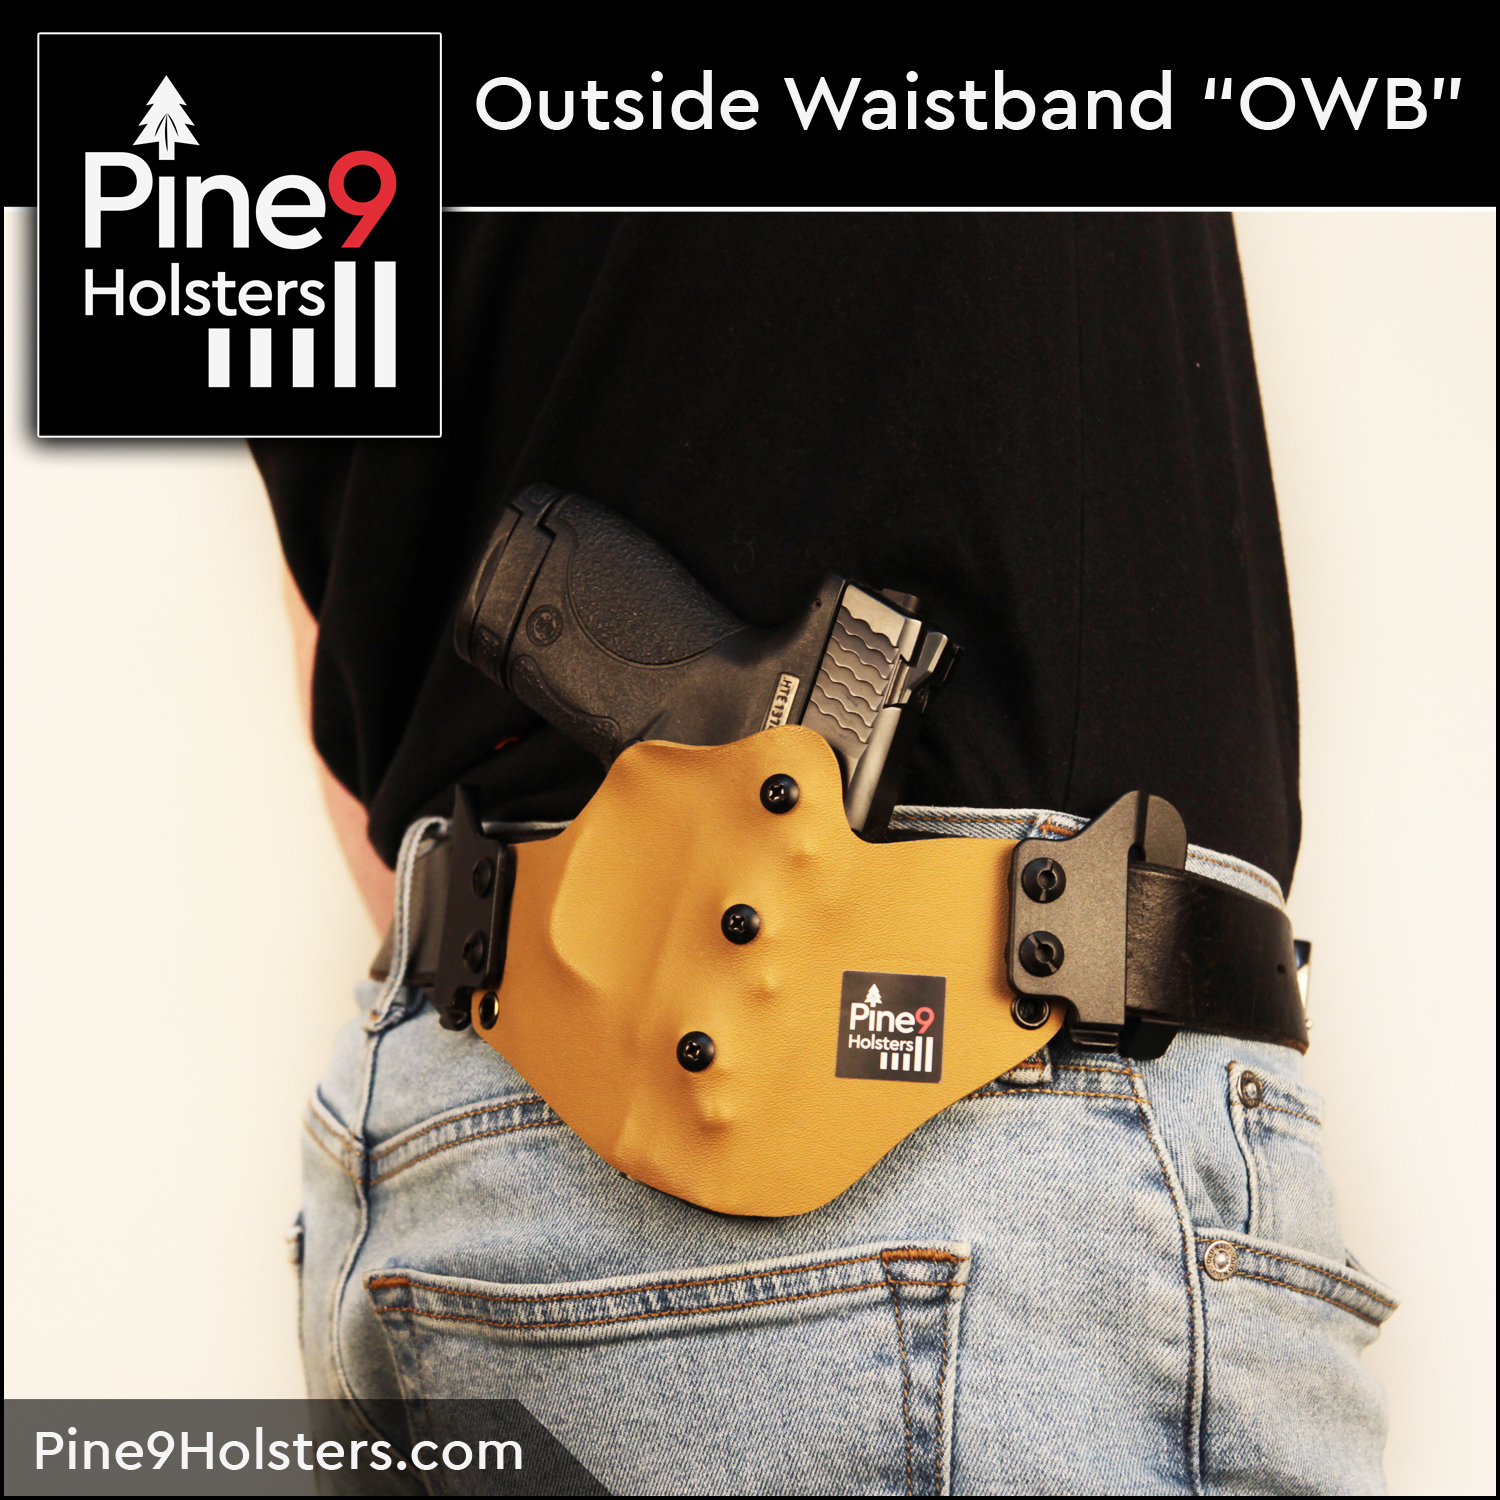 Pine9 Holsters OWB outside waistband holsters